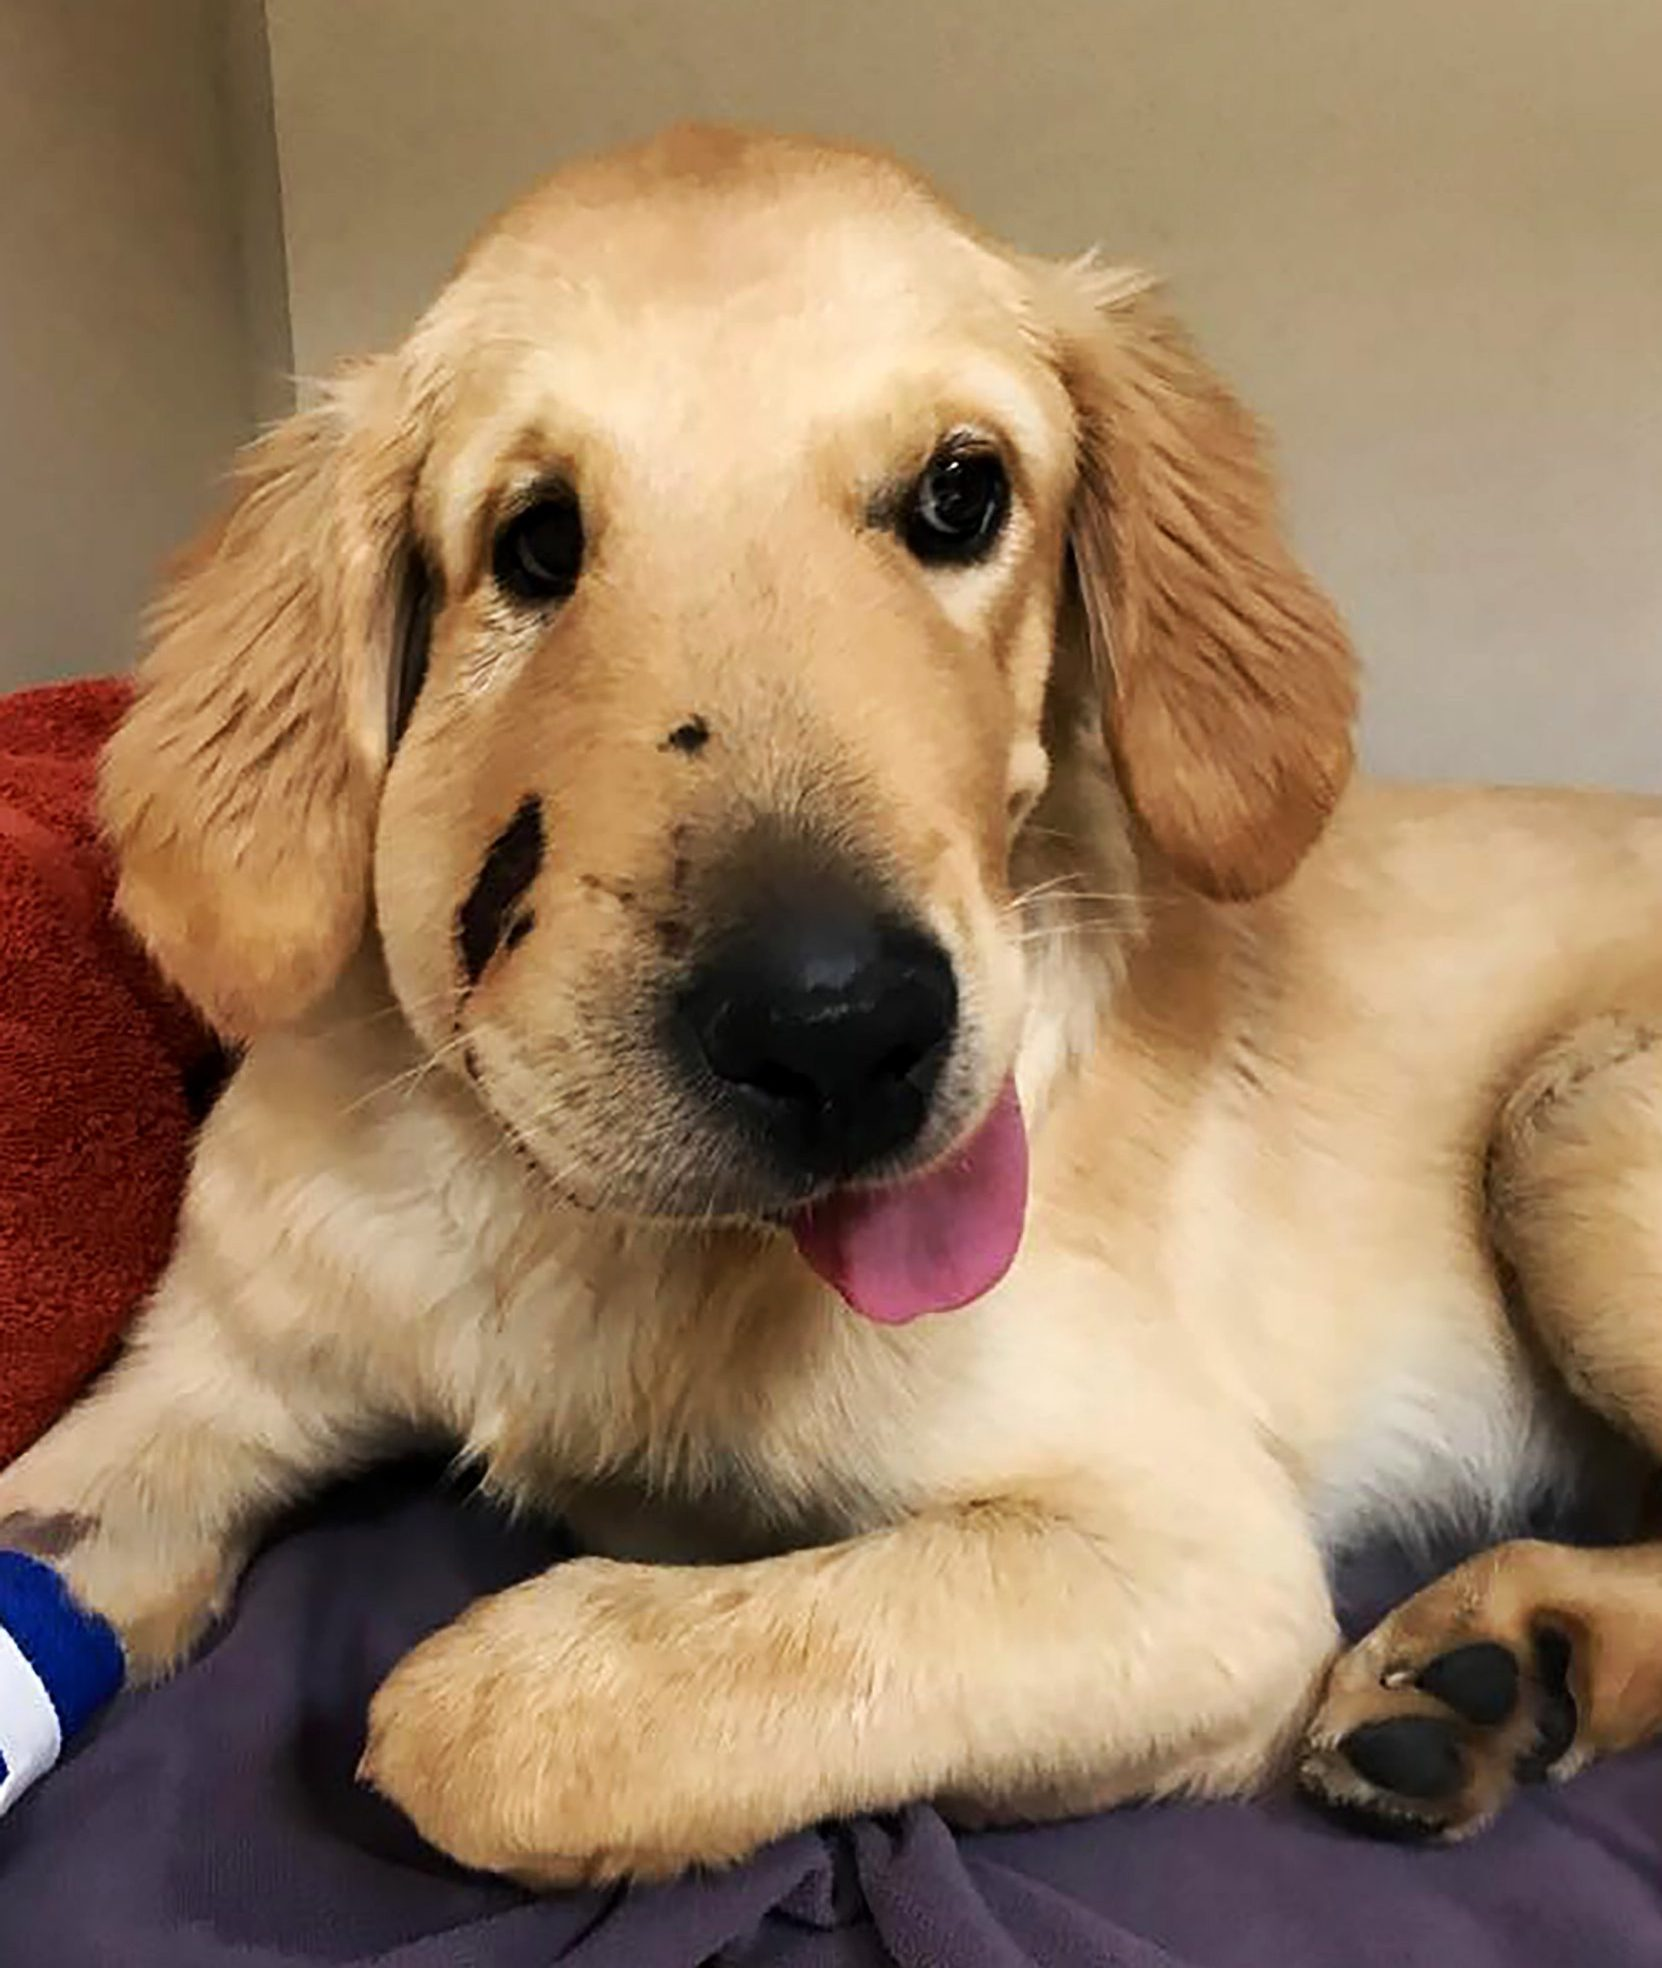 Pics From Paula Godwin/Caters News - (Pictured: Todd, six months old, after attacked by snake.Anthem,Arizona,USA) -A doting puppy who almost died after getting bitten by a rattlesnake to save his owners life has won a dog of the year prize. Paula Godwin, 44, was out for a walk with her six-month-old pooch, Todd, in June this year when he noticed something moving by her leg. The curious golden retriever quickly darted for the rattlesnake to shield his owner from its venomous bite, but it turned and bit him on the face. Paula, from Anthem, Arizona, grabbed Todd and rushed him to a veterinary hospital within 10 minutes, where he was treated with anti-venom. SEE CATERS